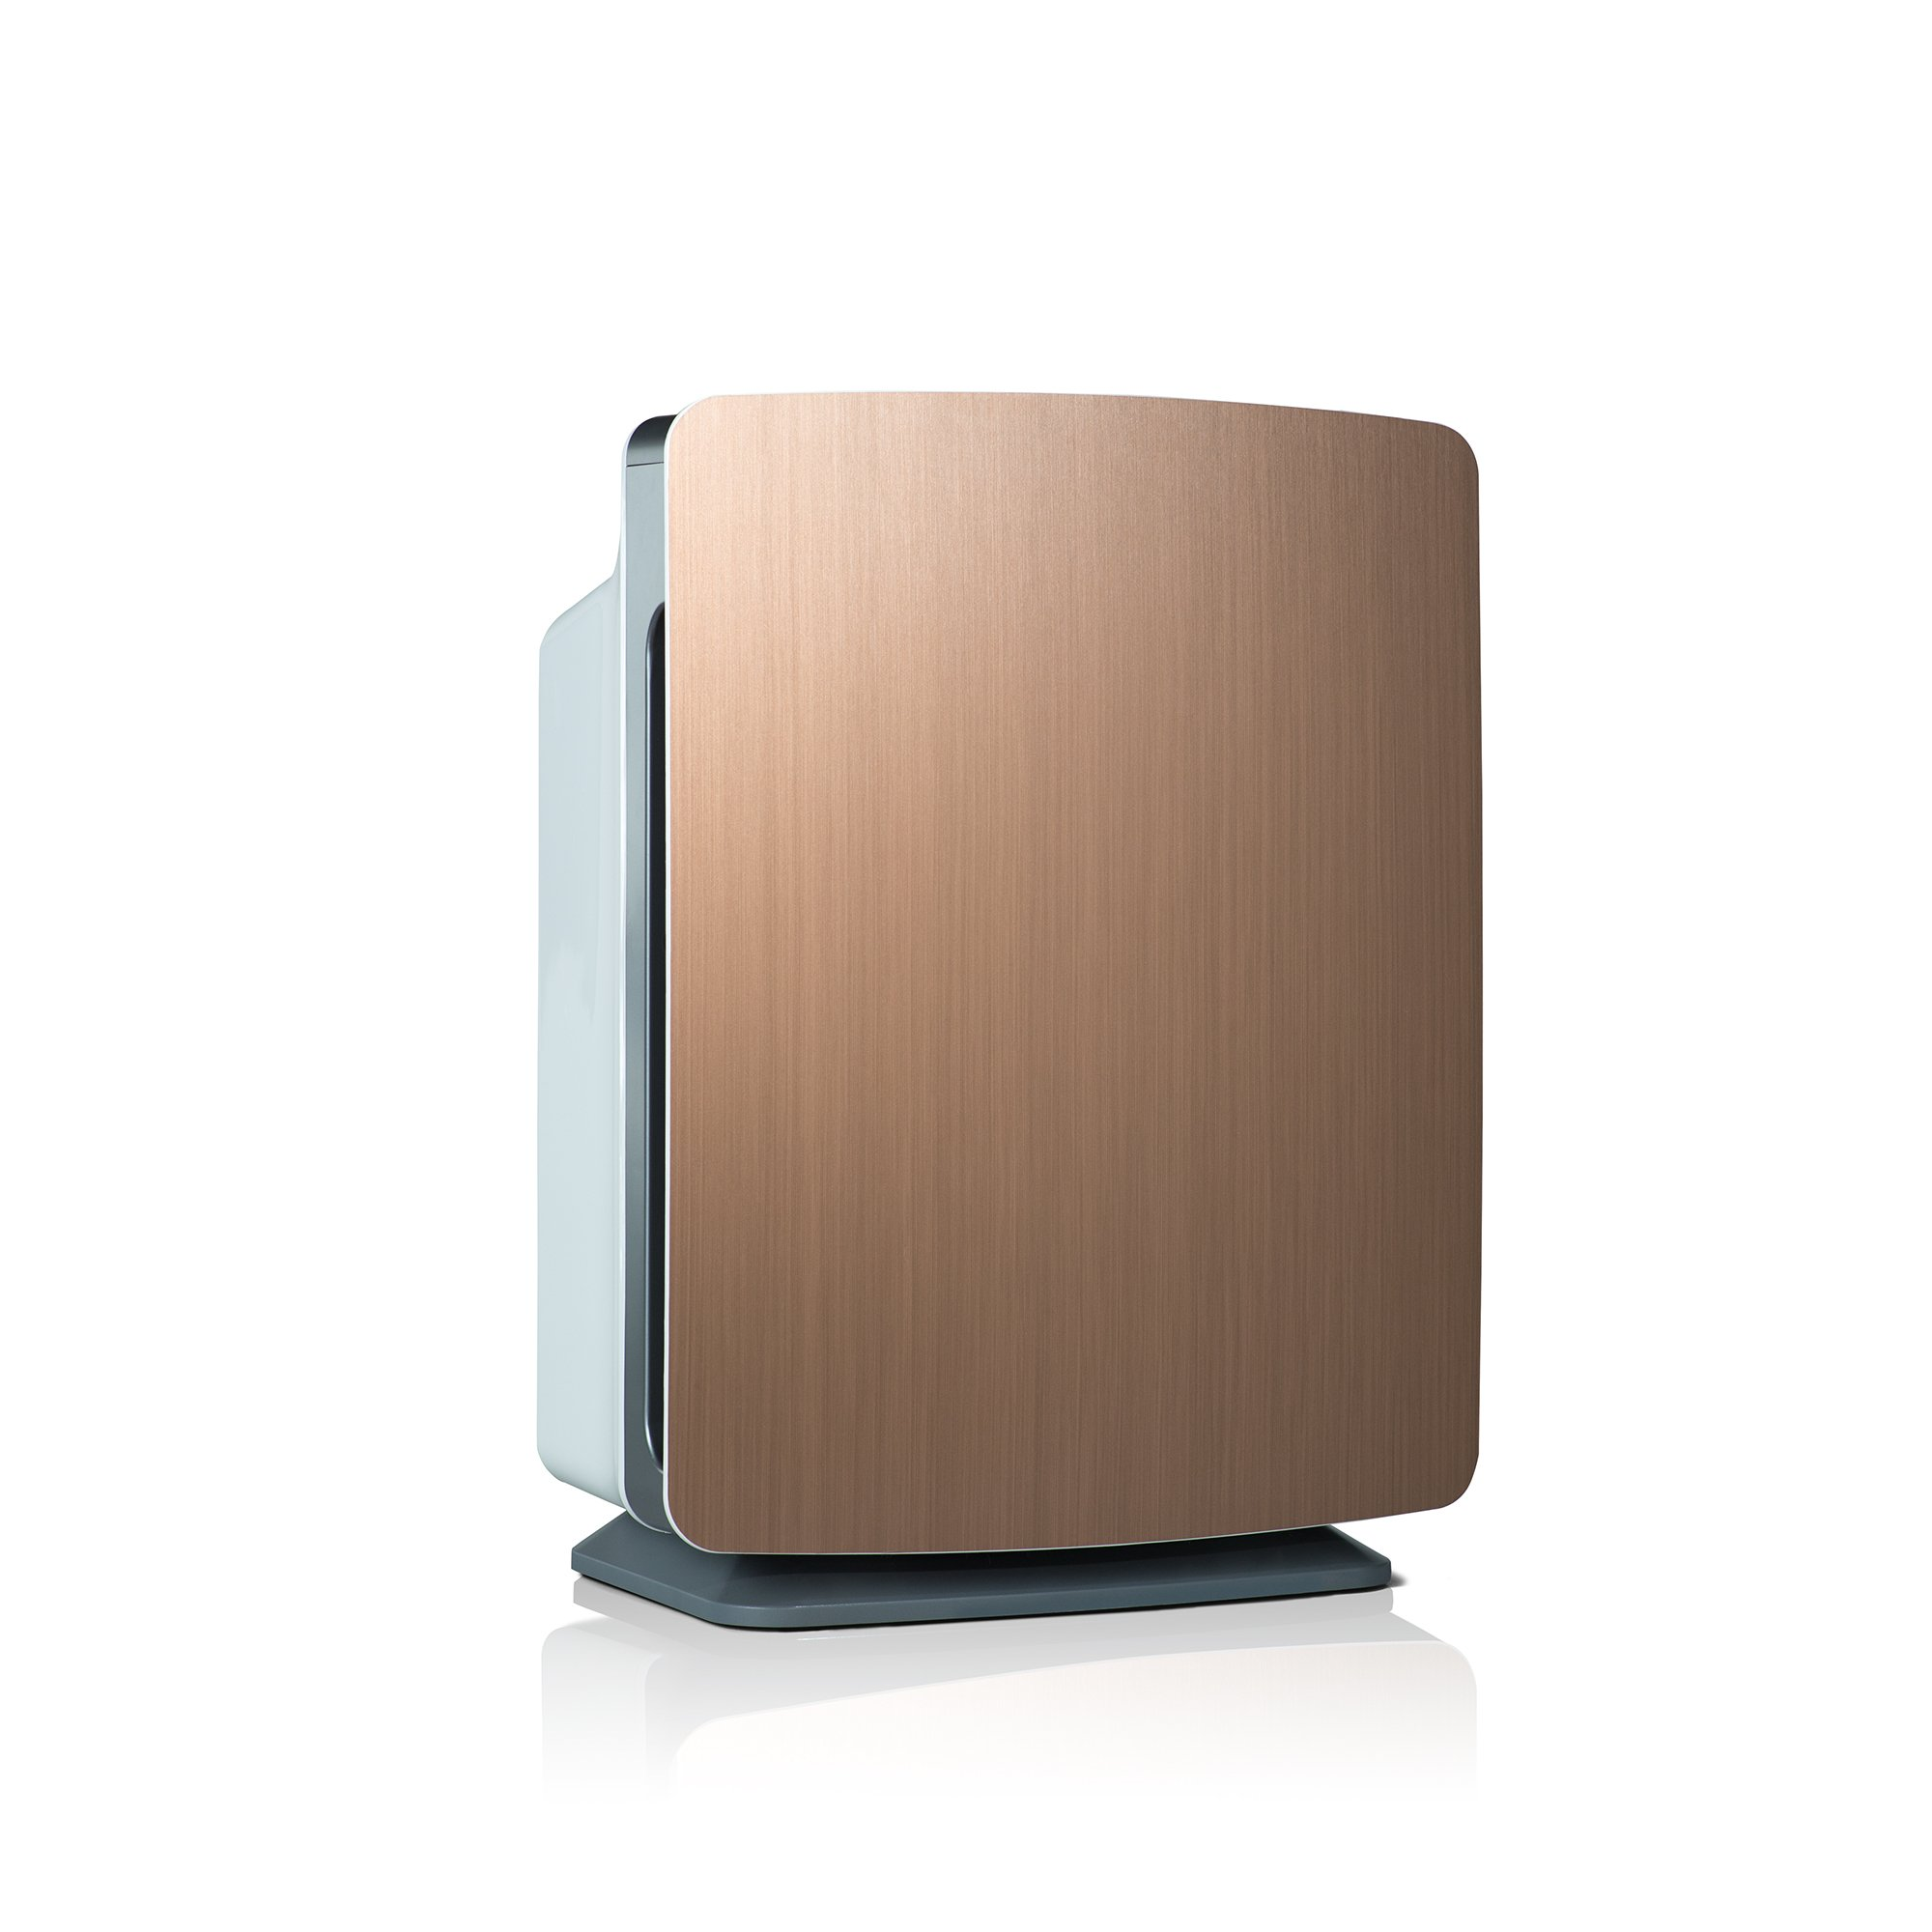 Alen FIT50 Customizable Air Purifier with HEPA Filter to Remove Allergies & Everyday Odors, 900 Sq. Ft., in Brushed Bronze